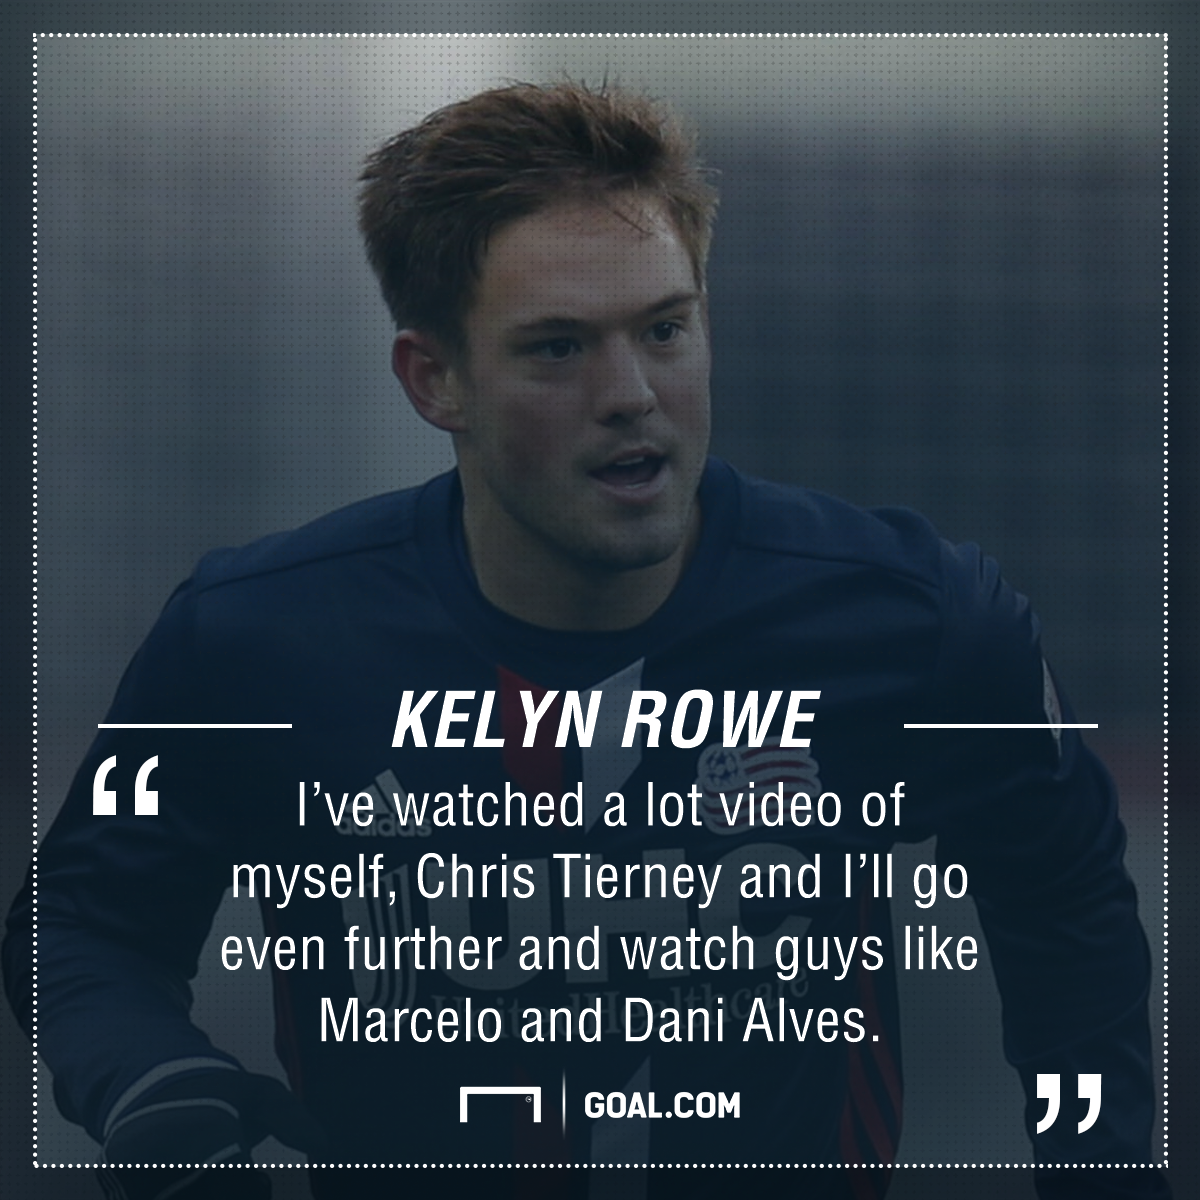 Kelyn Rowe playing surface